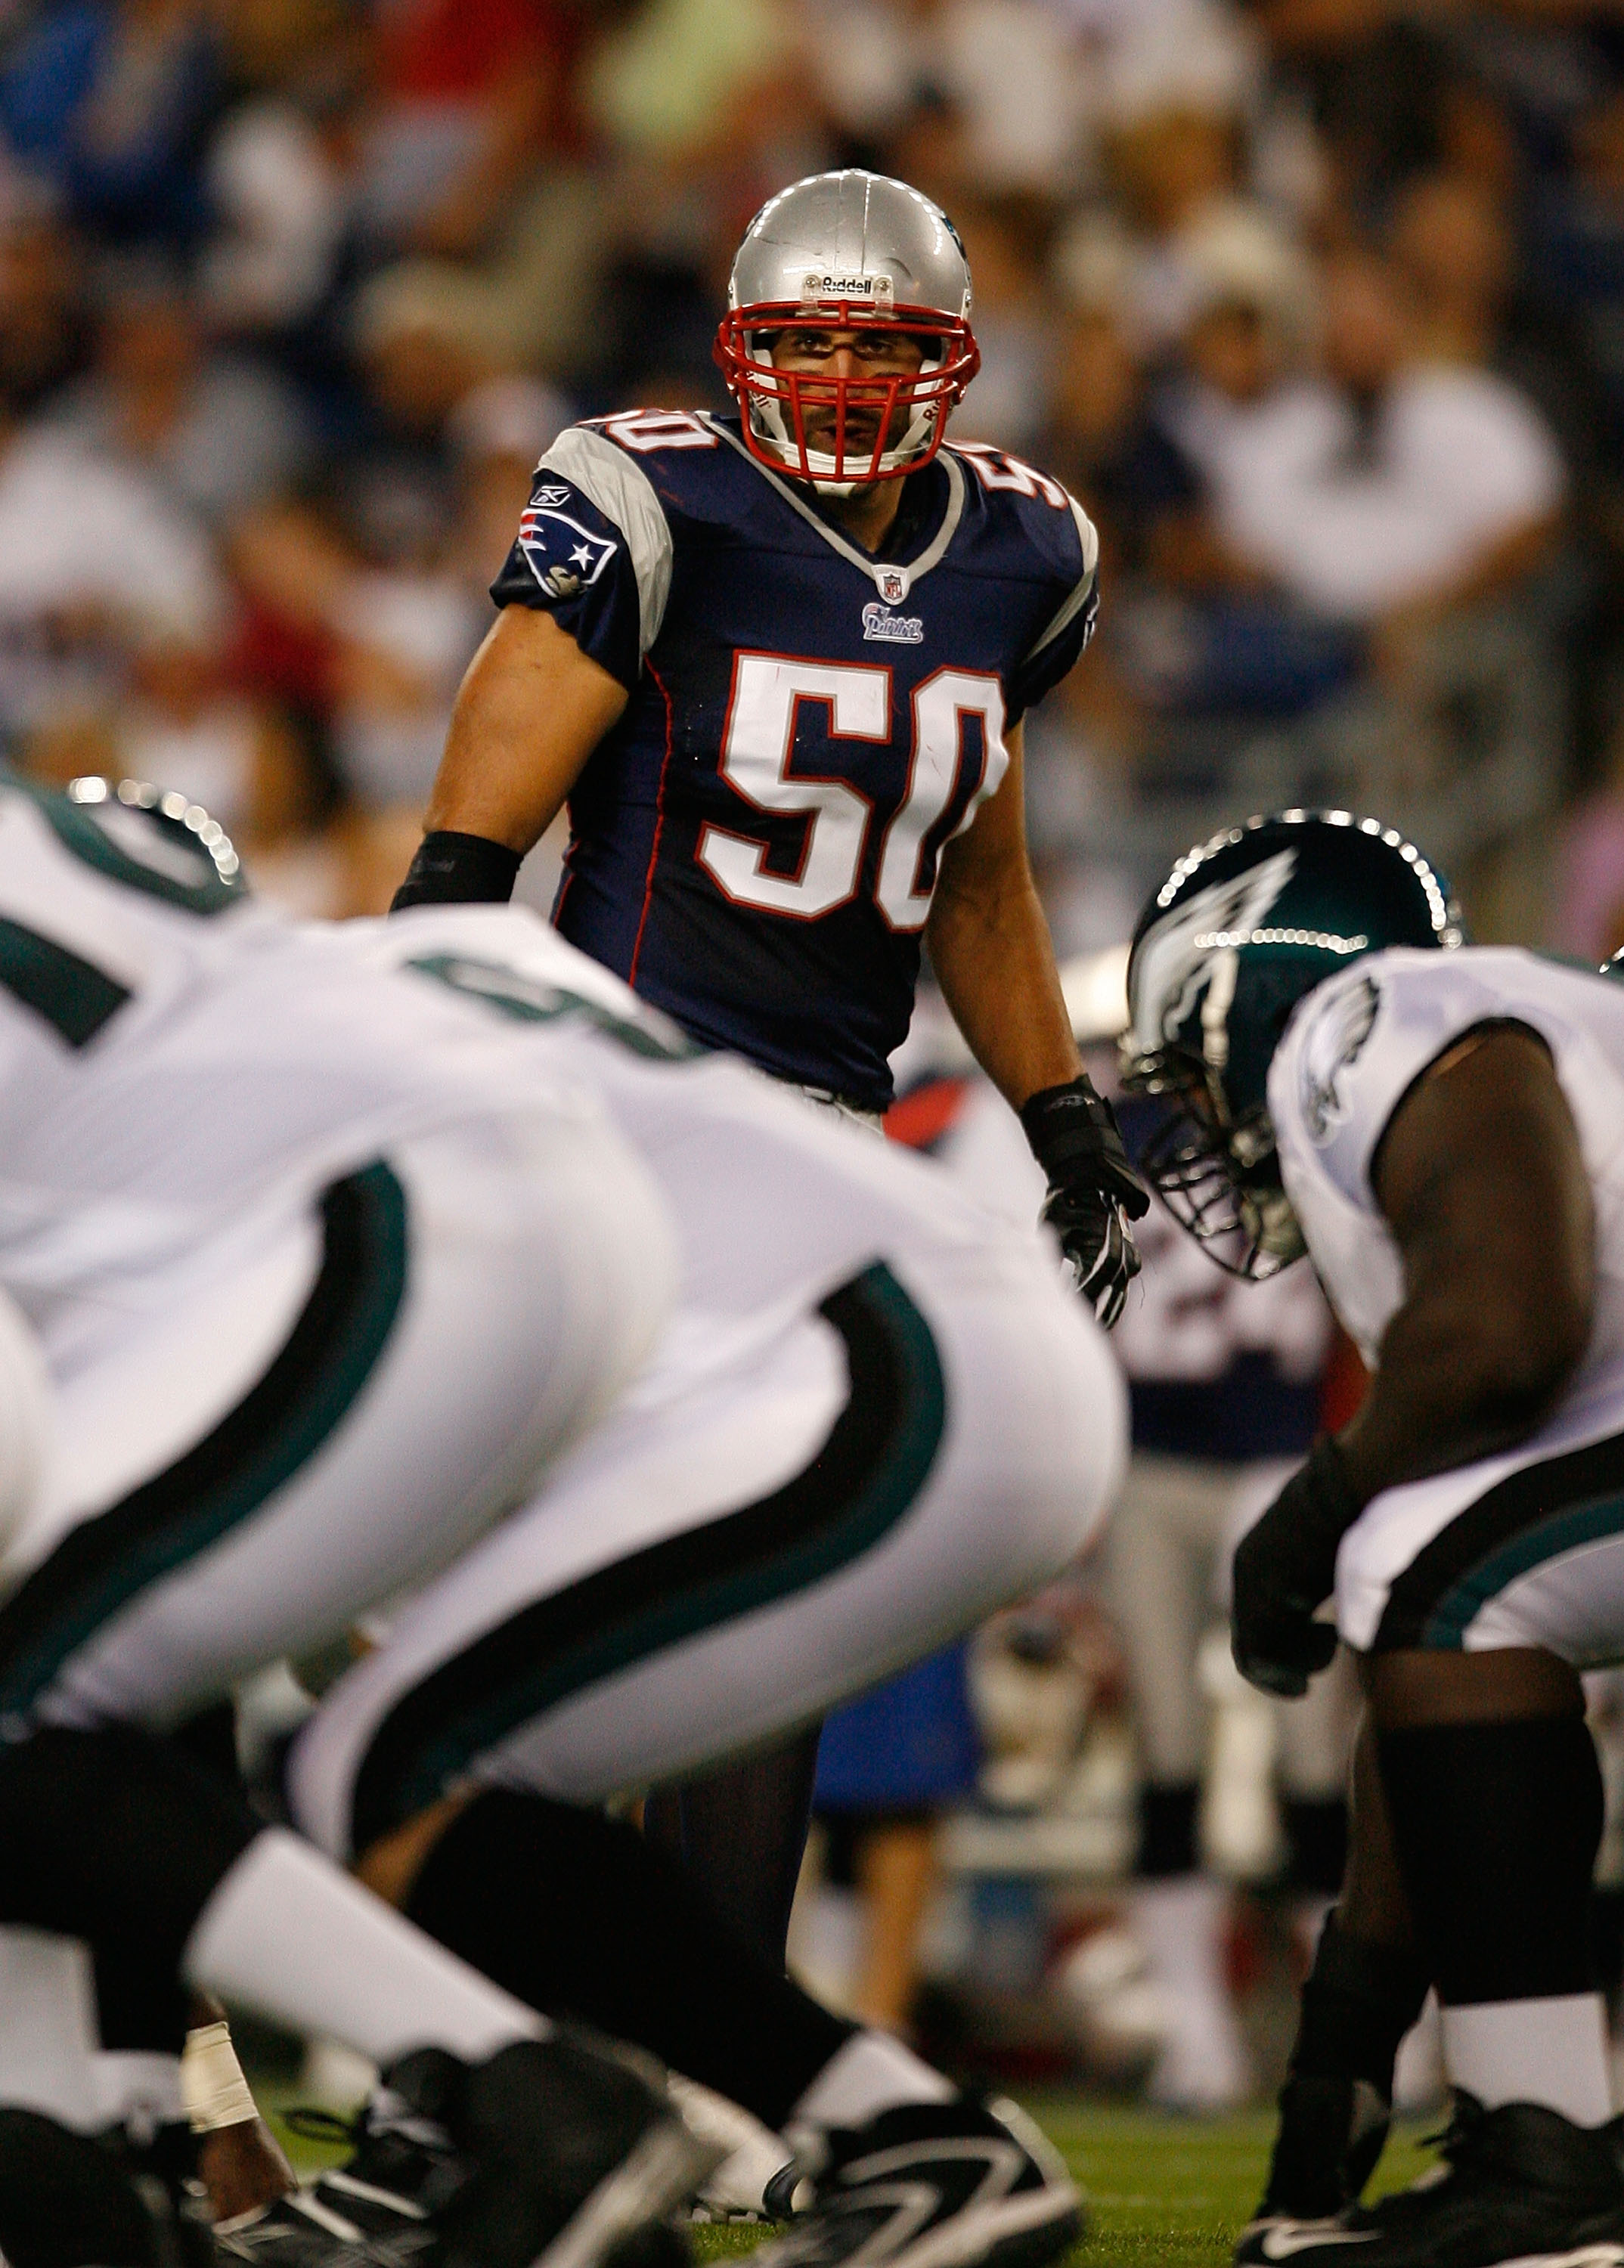 FOXBORO, MA - AUGUST 22: Mike Vrabel #50 of the New England Patriots defends against the offense of the Philadelphia Eagles during preseason action at Gillette Stadium on August 22, 2008 in Foxboro, Massachusetts. (Photo by Jim Rogash/Getty Images)